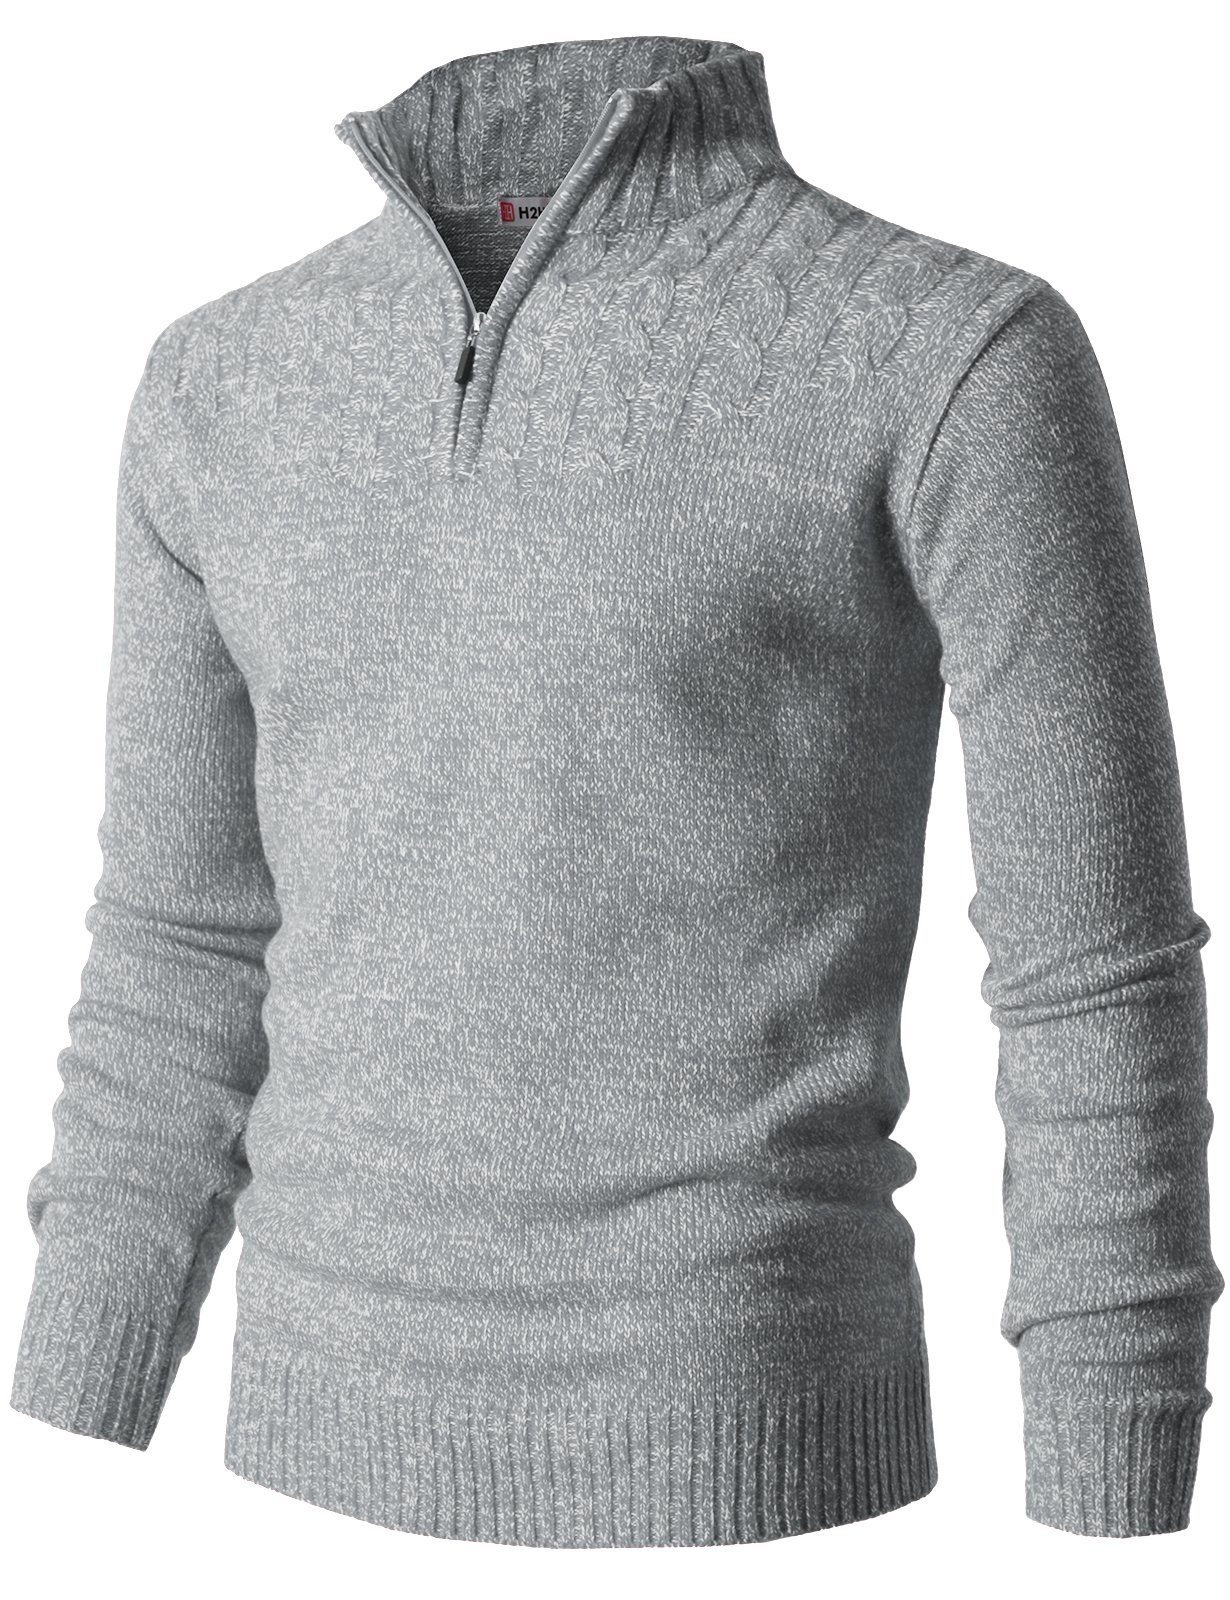 H2H Mens Casual Half Zip with Twisted Knitted Long Sleeve Pullover Sweater Gray US M/Asia L (CMOSWL027)